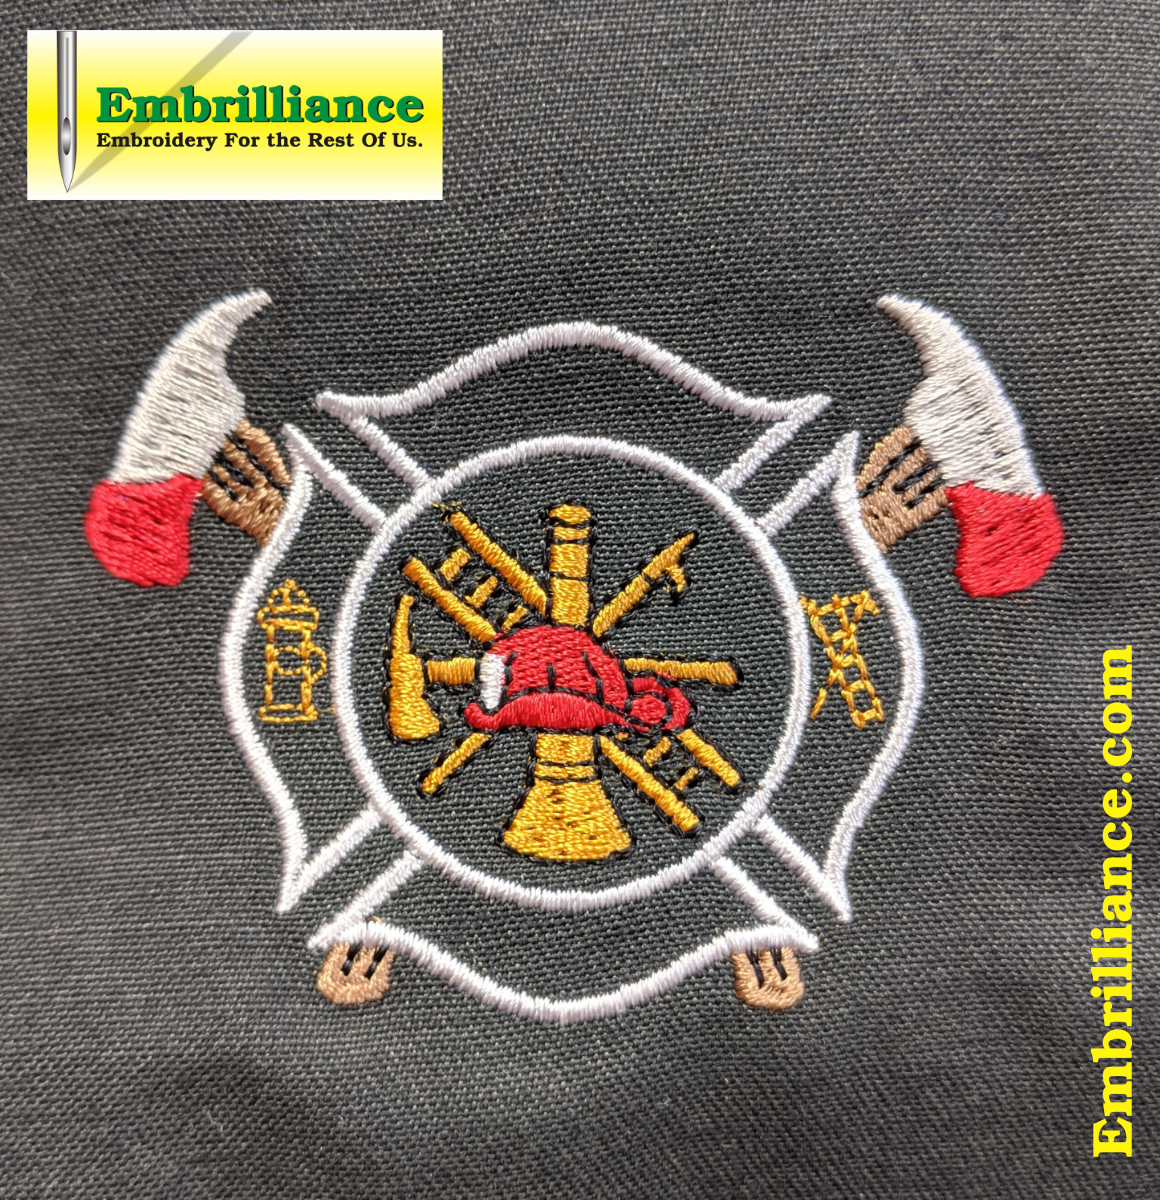 Stay Strong and Stitch On #25 – Firefighters' Maltese Cross with Crossed Axes Embroidery Design